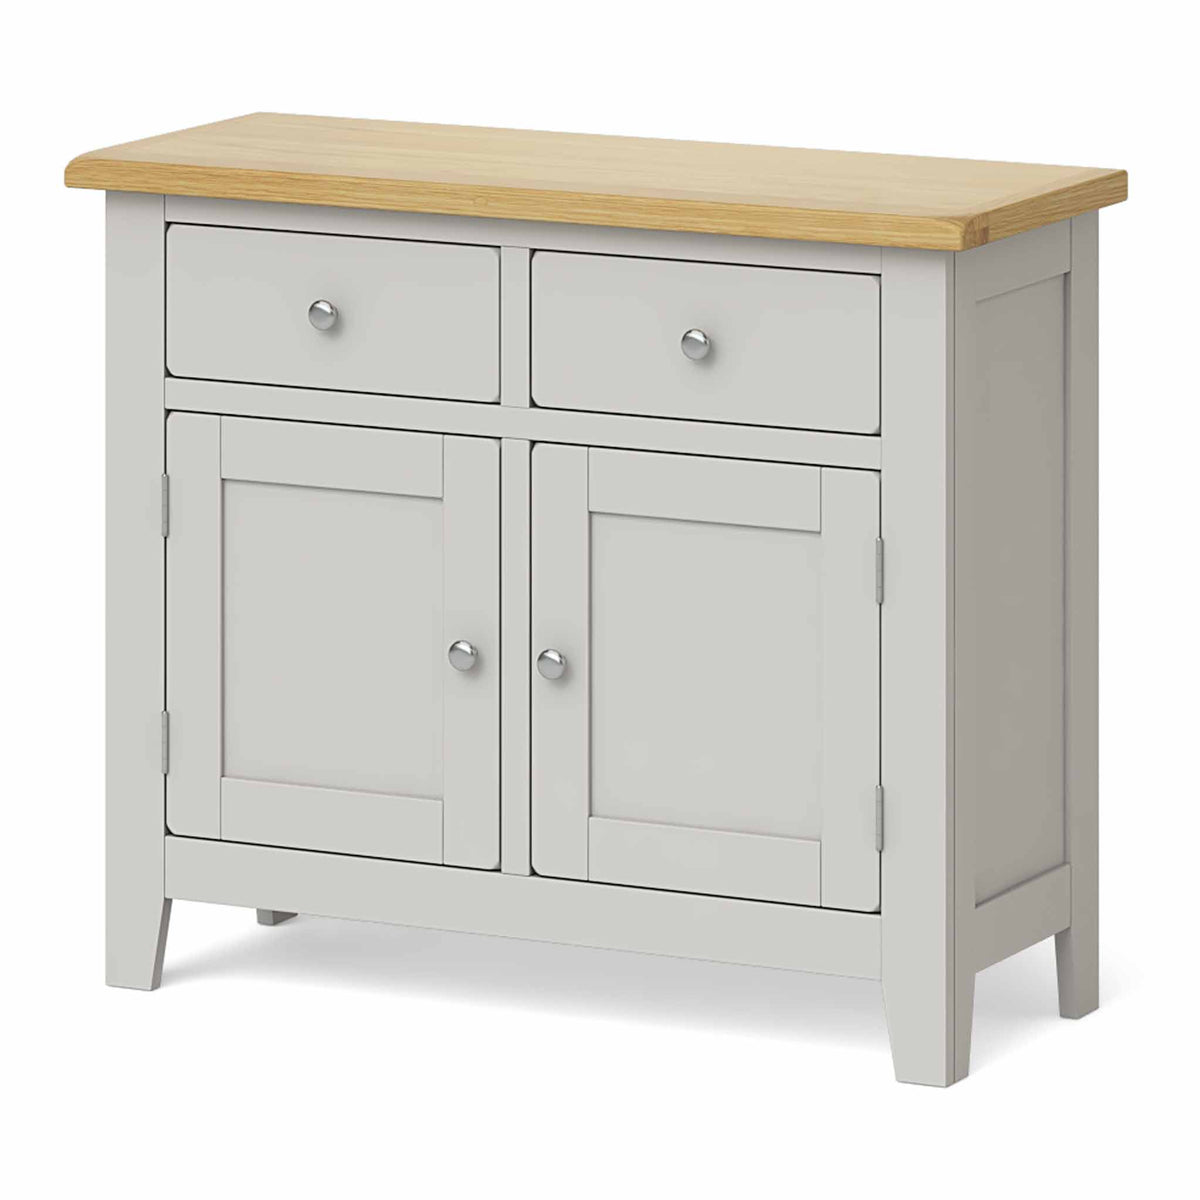 Lundy Grey Small 2 Door Sideboard - Side view